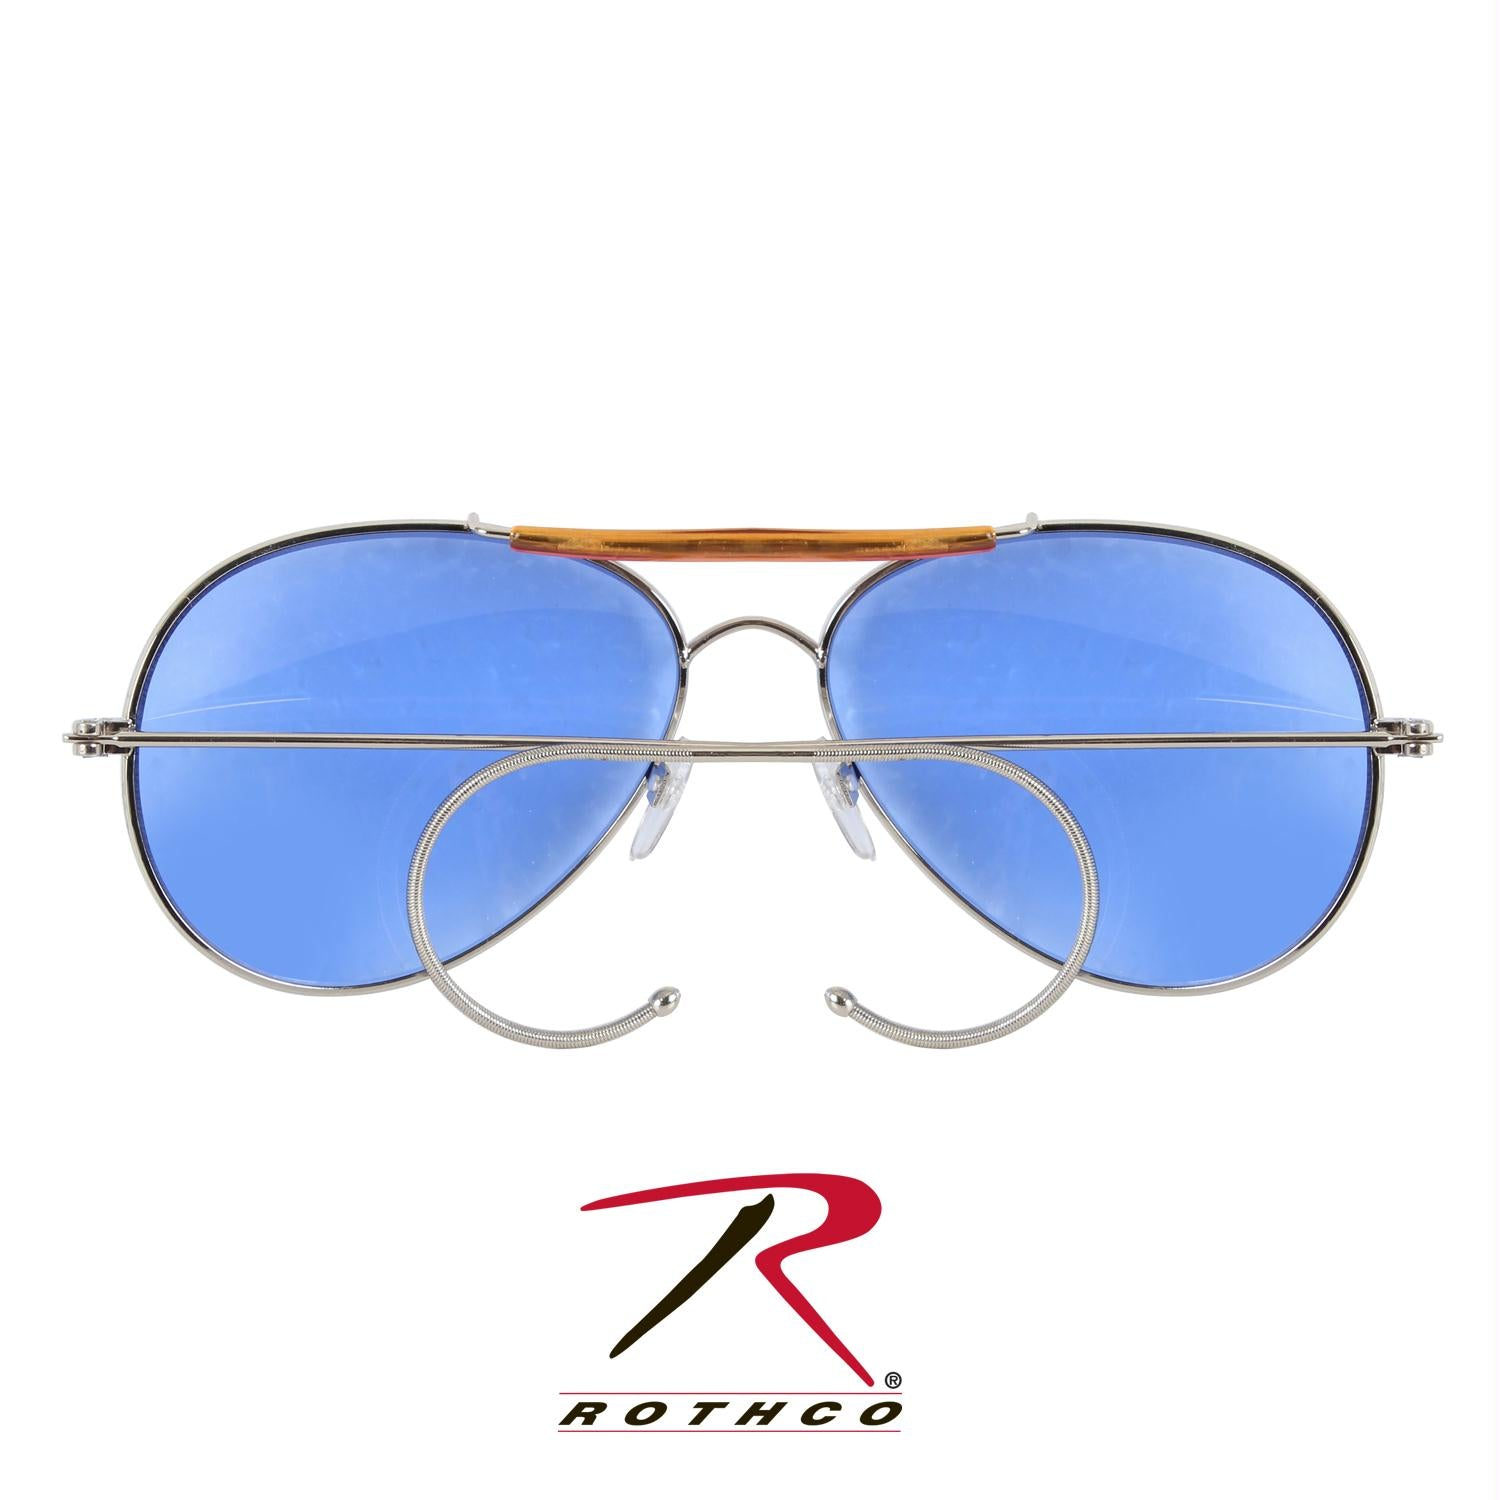 Rothco Aviator Air Force Style Sunglasses - Blue / Polybagged Only